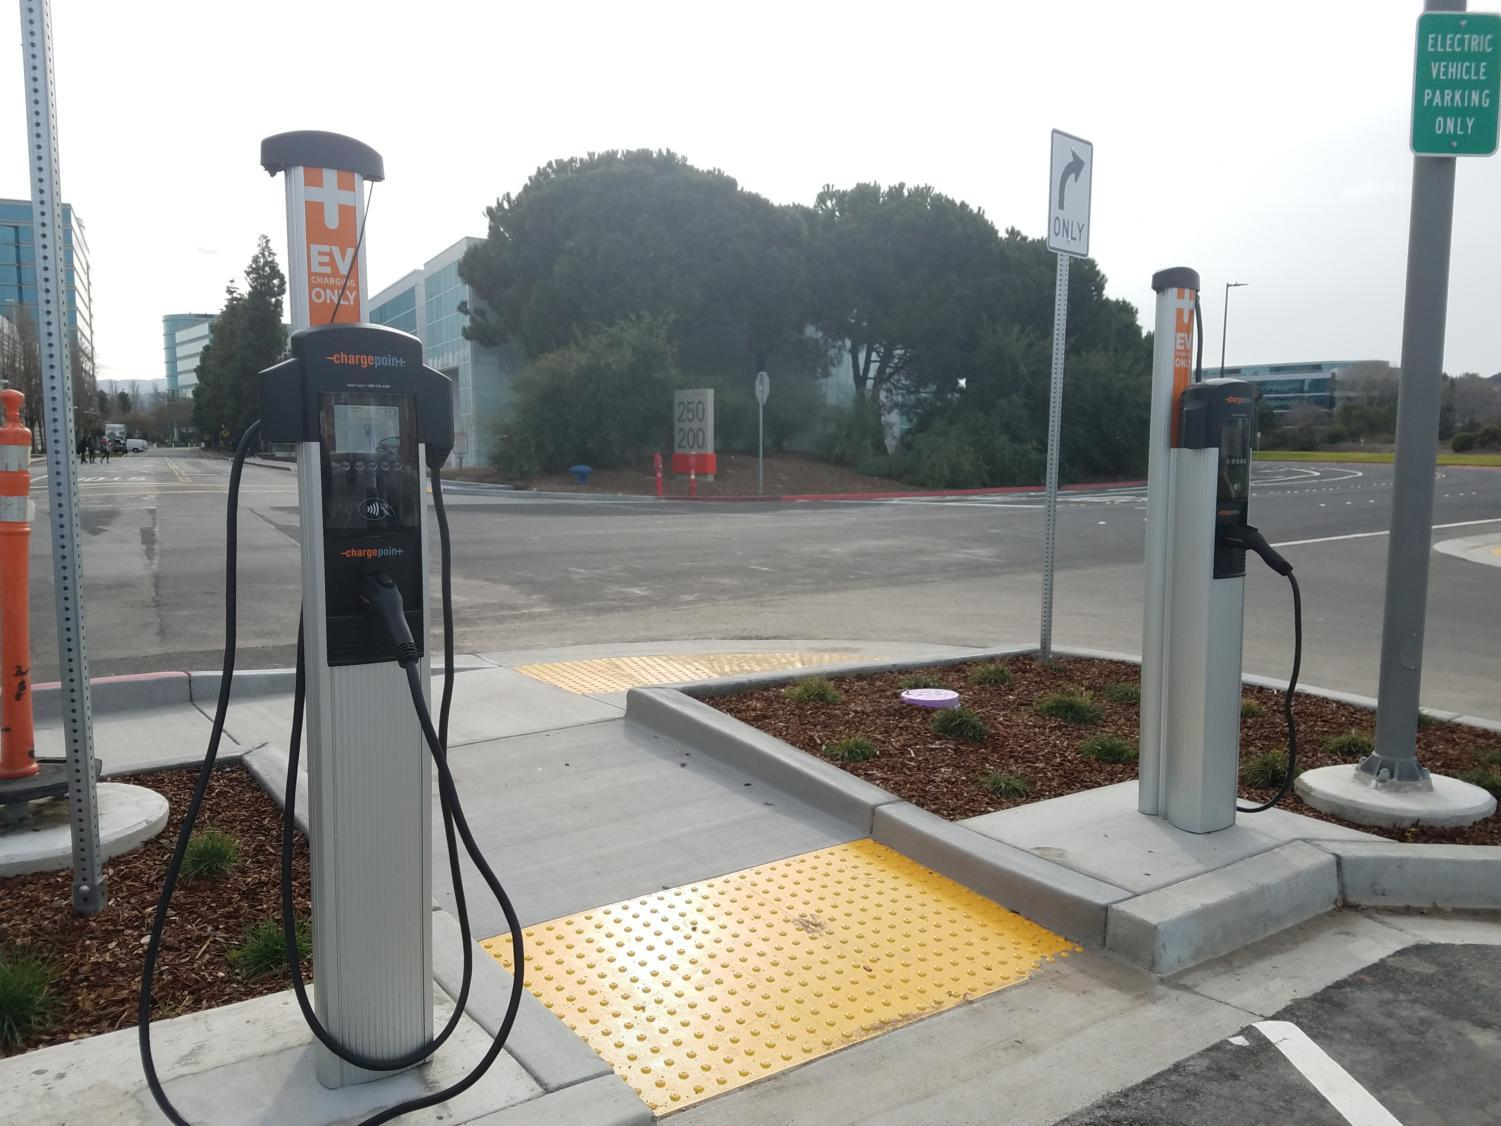 The+new+campus+has+charging+ports+for+electric+cars+in+its+parking+lot.